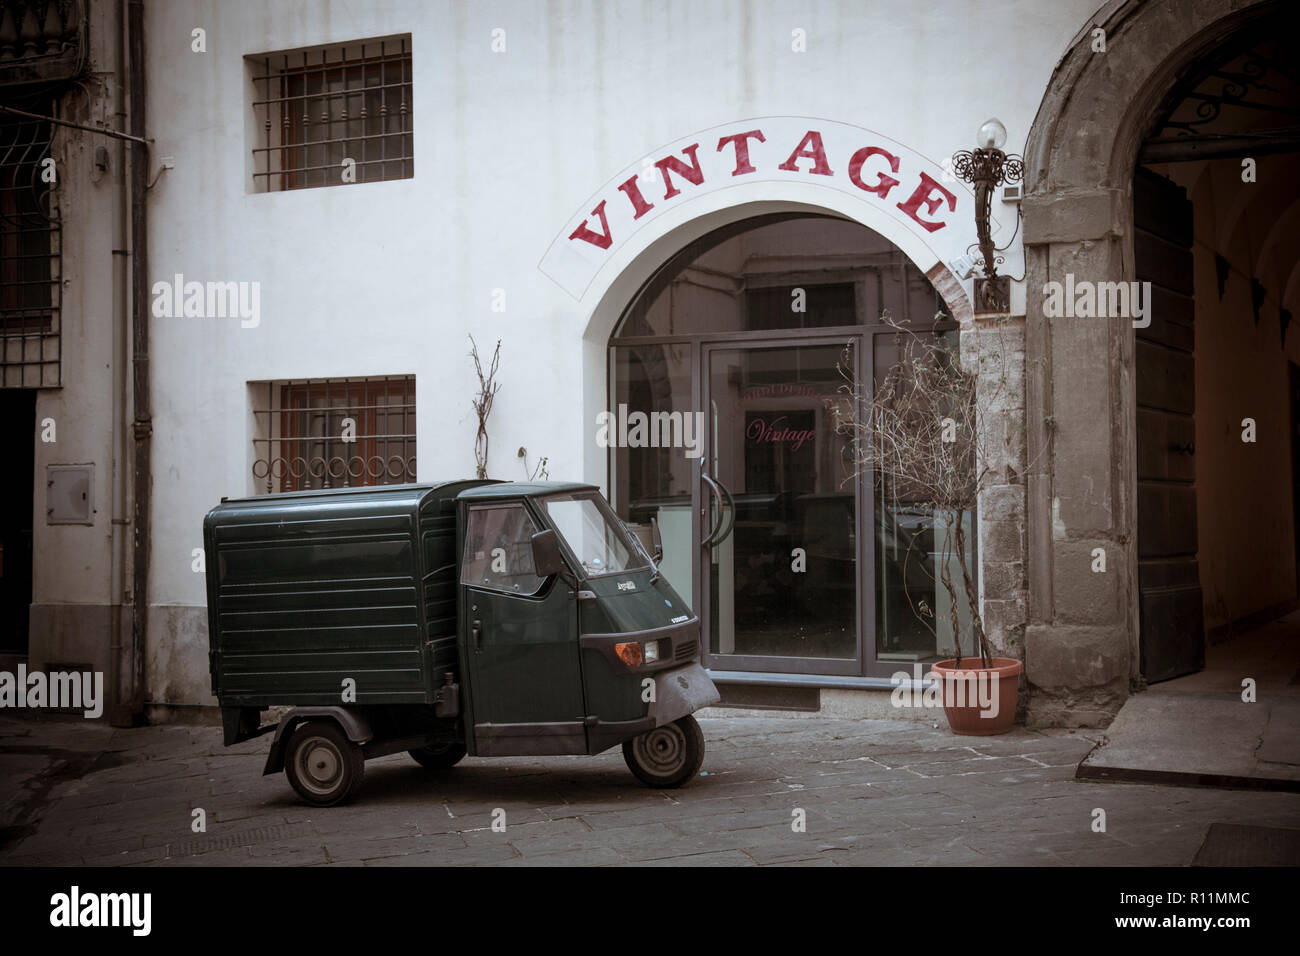 A miniscule Piaggio Ape 50 delivery truck packed in the back streets of Lucca, Italy. - Stock Image